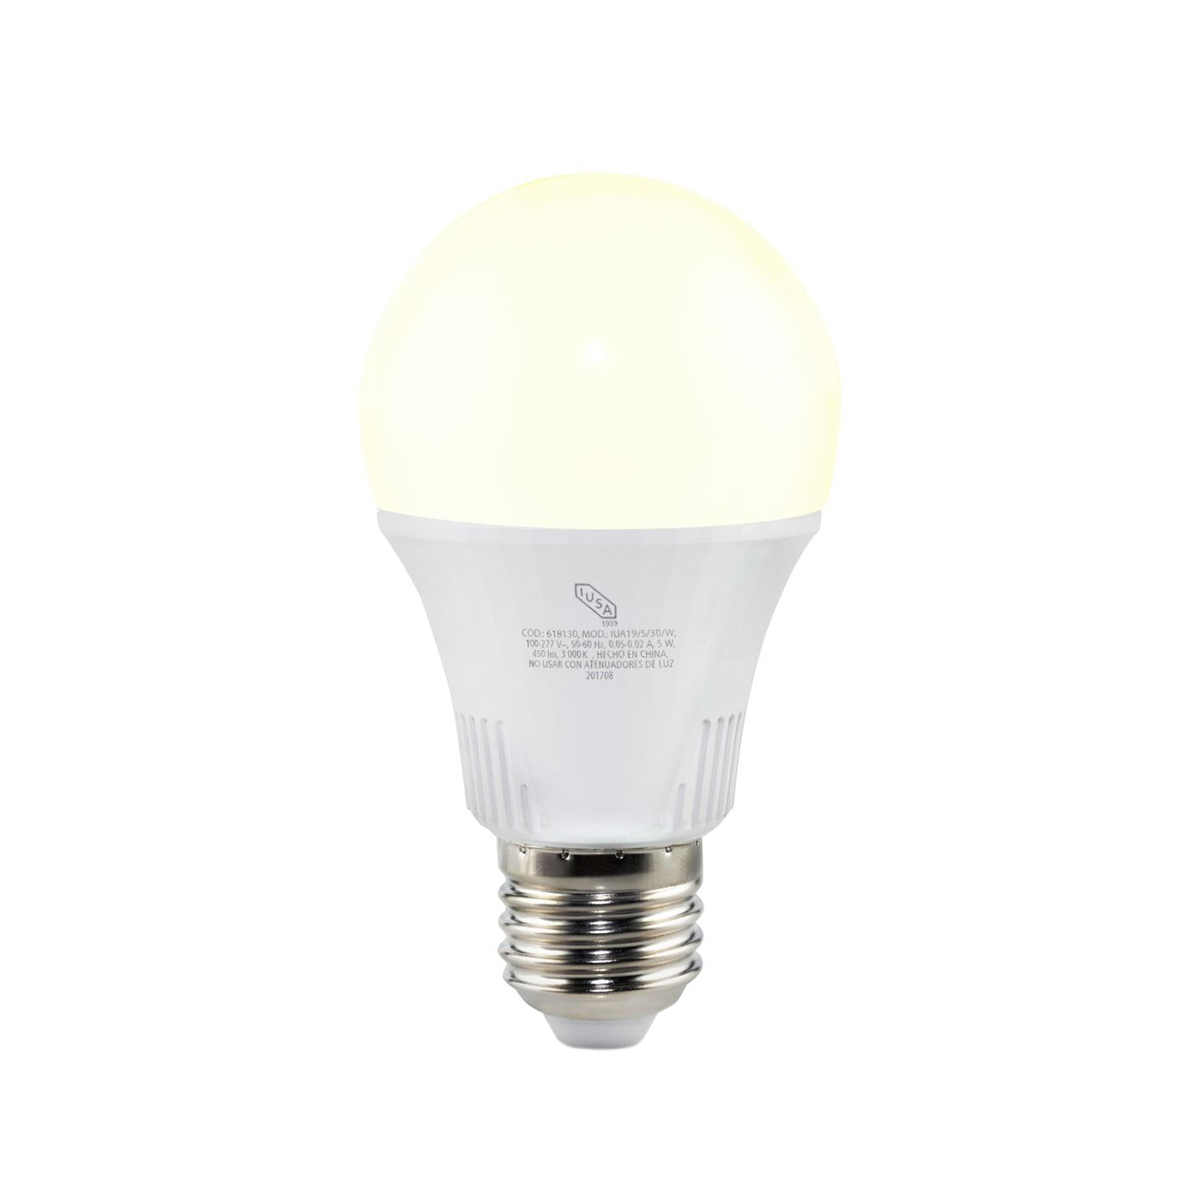 Foco Lampara Led A19 Luz Calida 9W Equivale 60 W 618311 Iusa